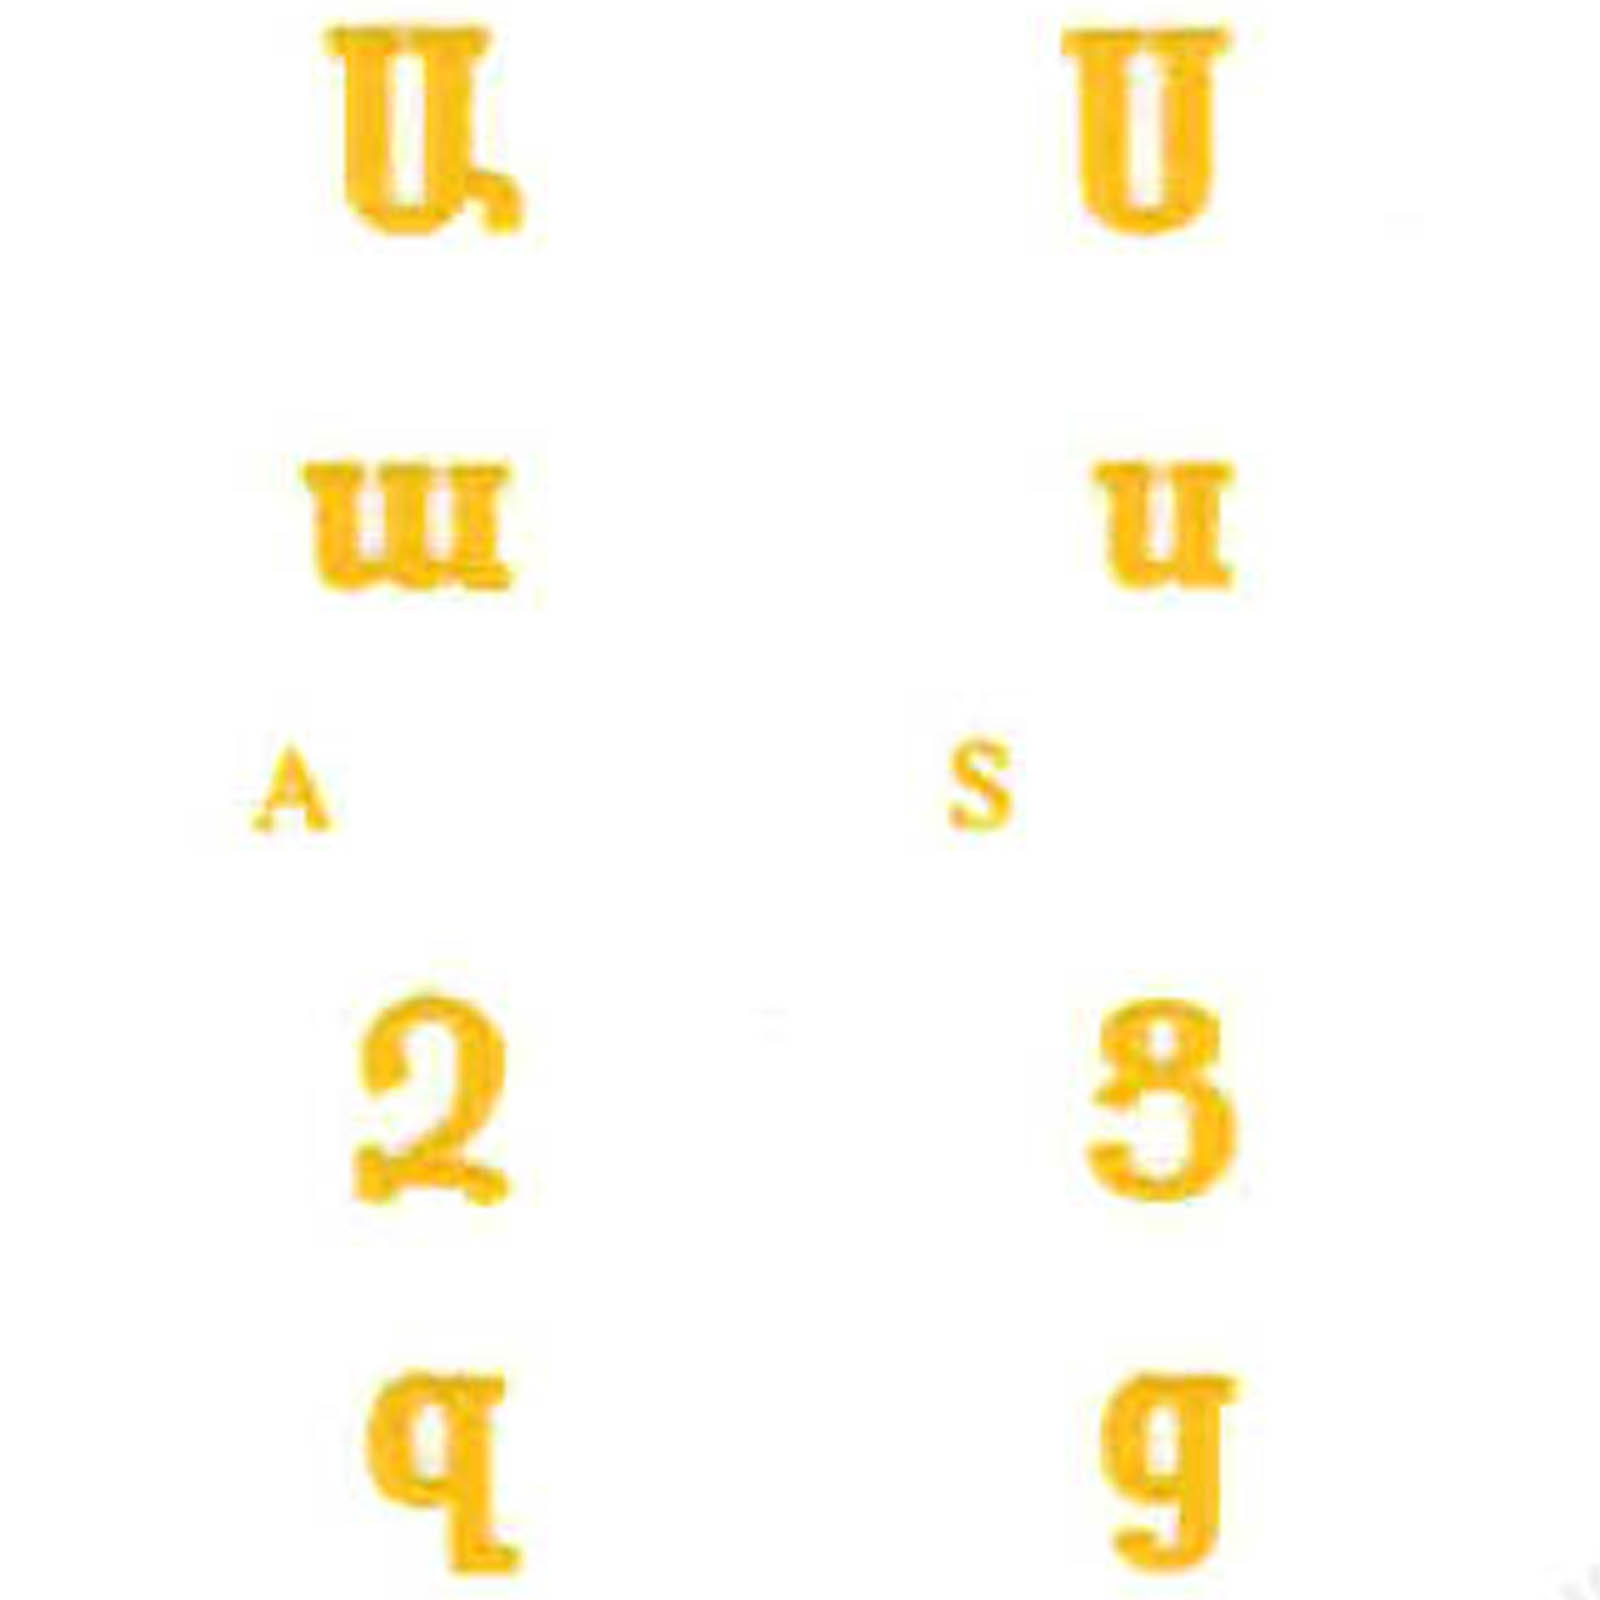 ARMENIAN KEYBOARD STICKERS YELLOW LETTERS TRANSPARENT BACKGROUND